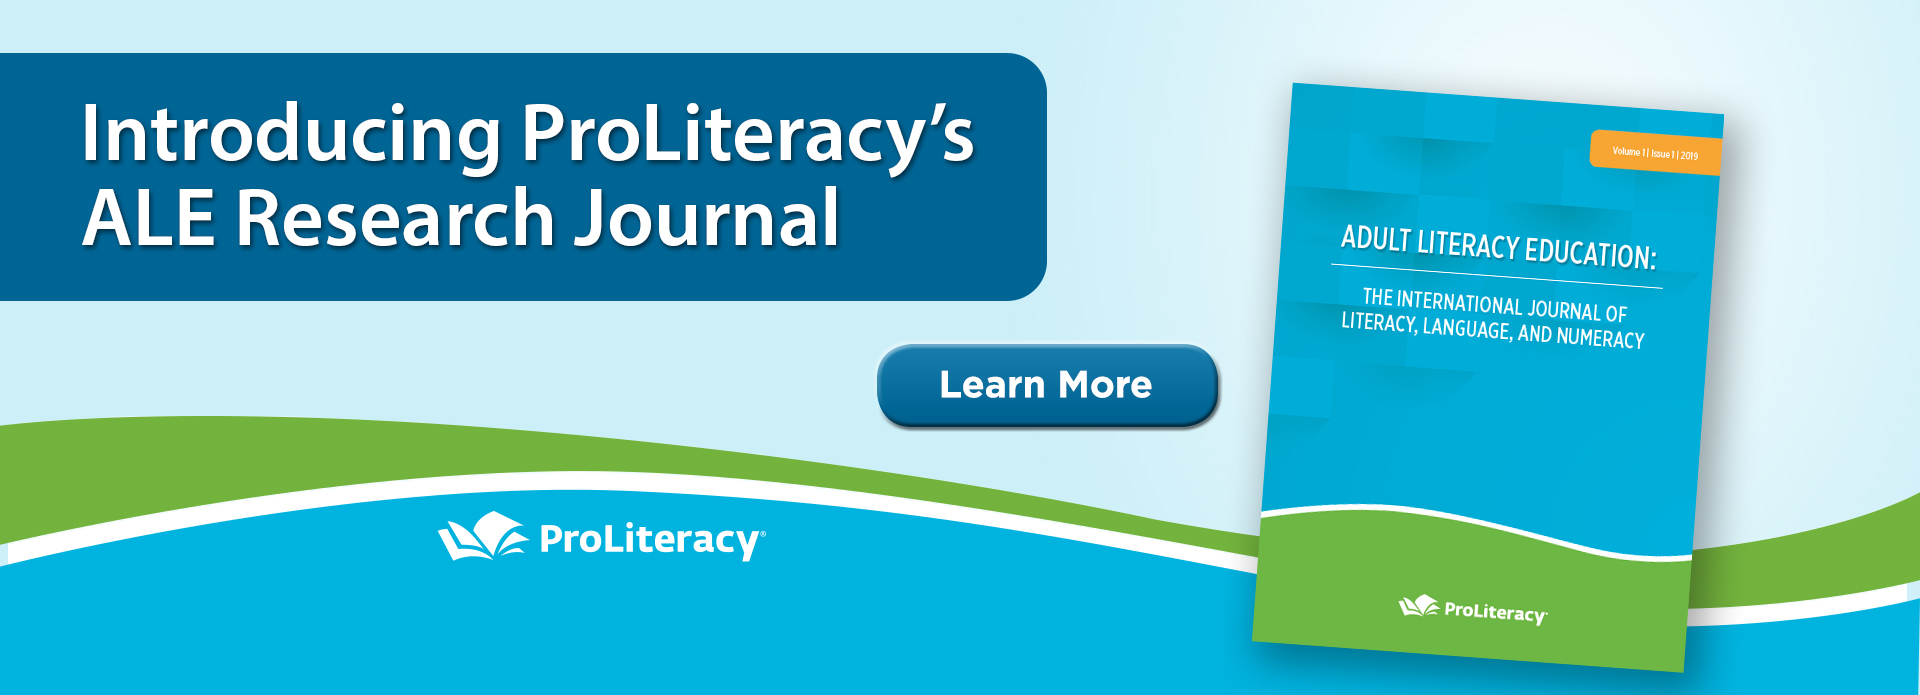 ProLiteracy's Adult Literacy Education Research Journal